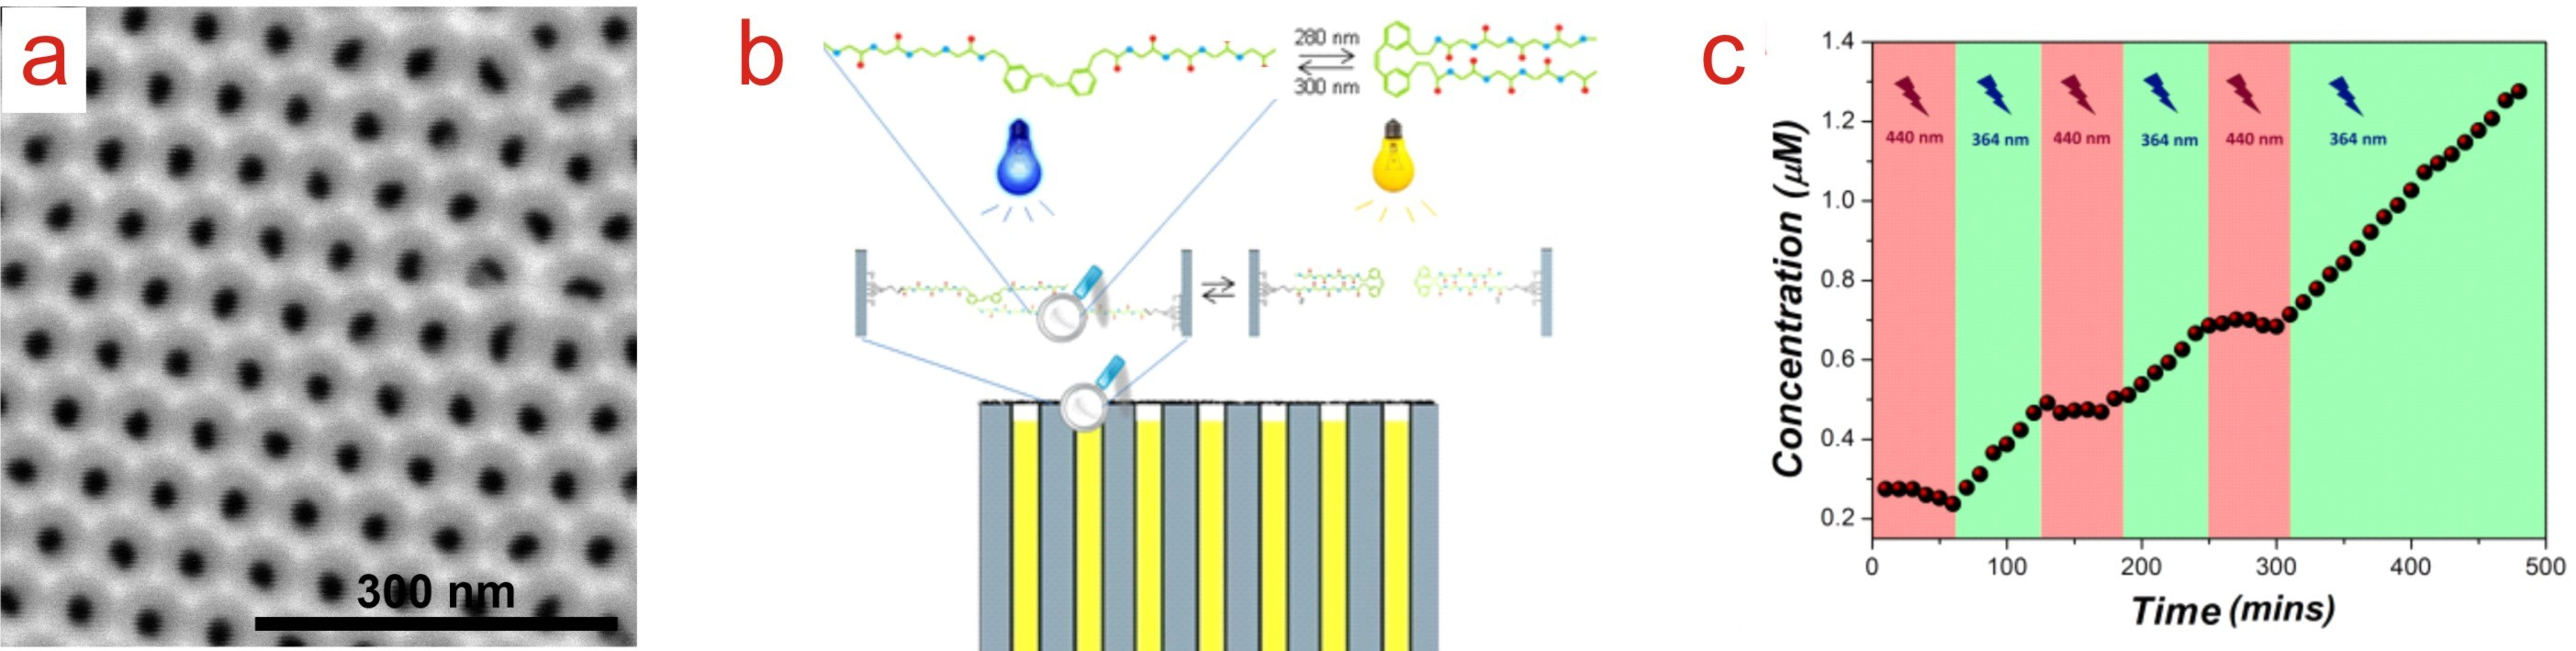 Photo-Switchable Membranes based on Peptide-Modified Nanoporous Anodic Alumina: Toward Smart Membranes for On-Demand Molecular Transport